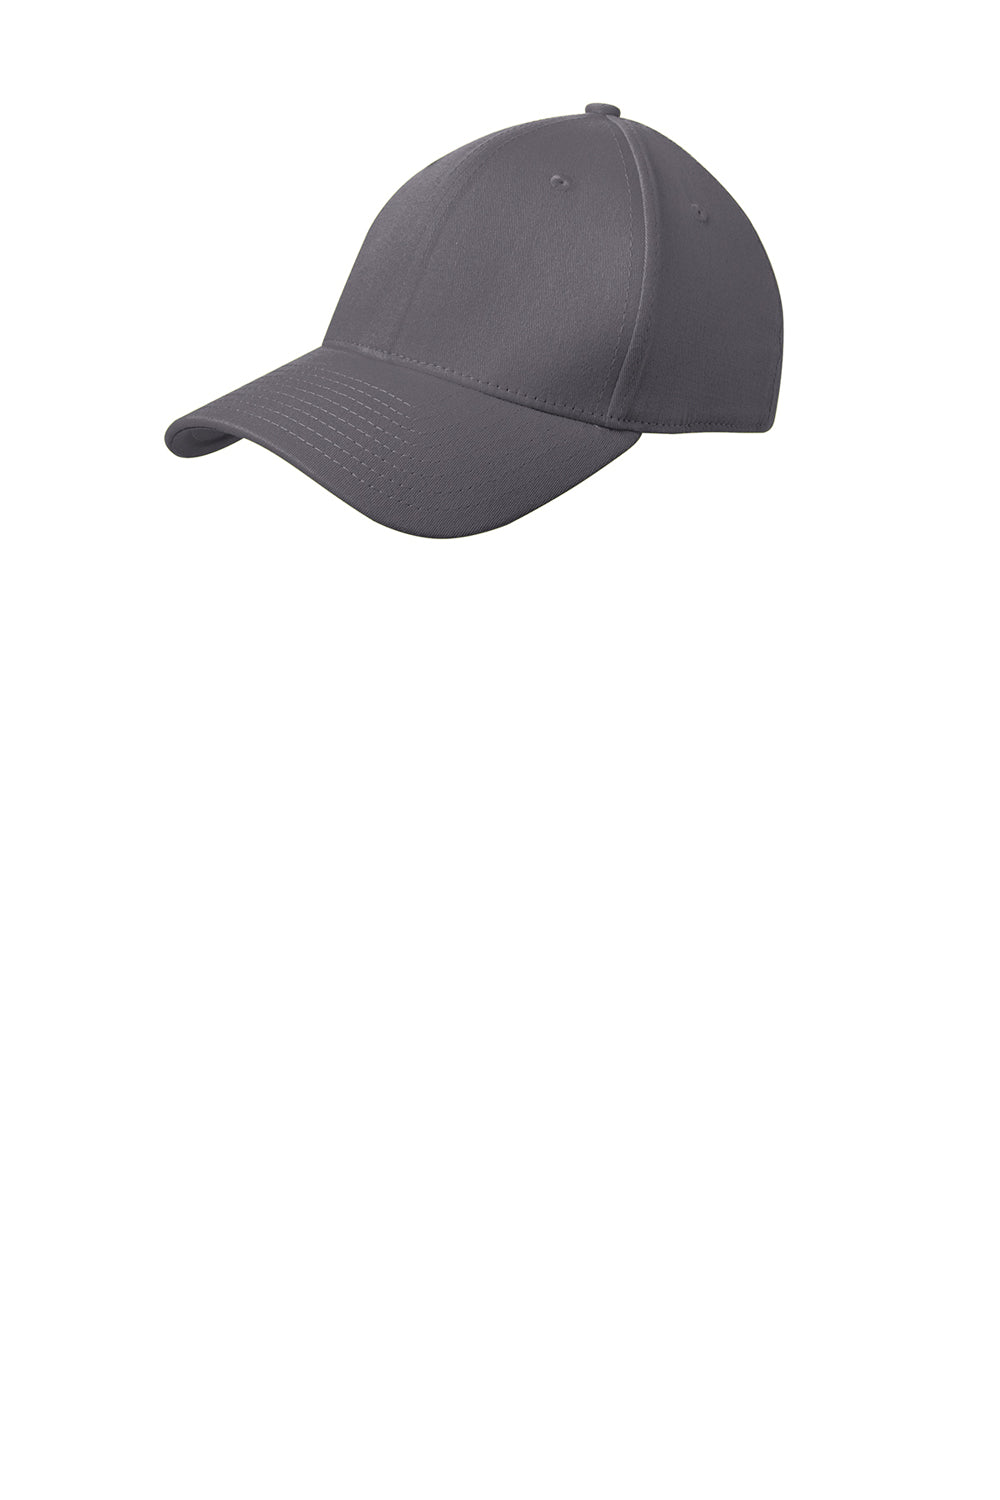 New Era NE1000 Mens Stretch Fit Hat Graphite Grey Front